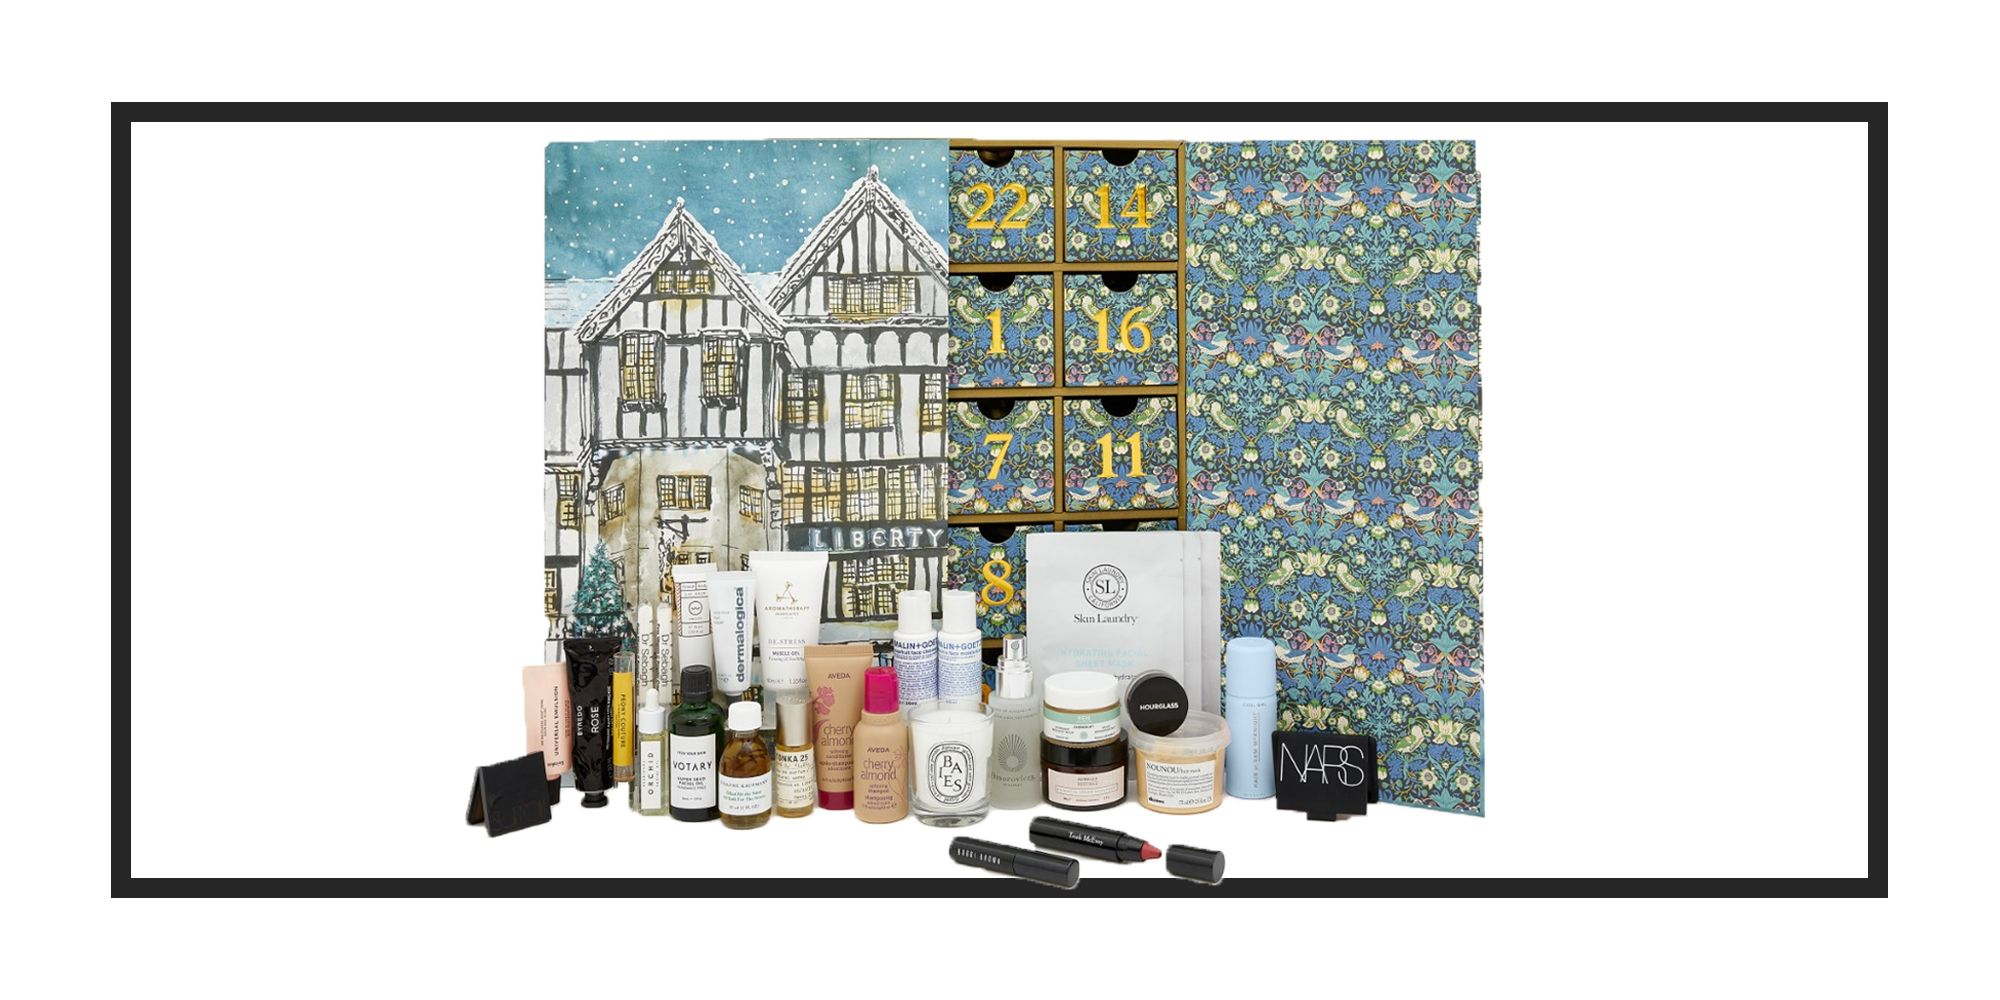 The Liberty London beauty advent calendar is on sale now